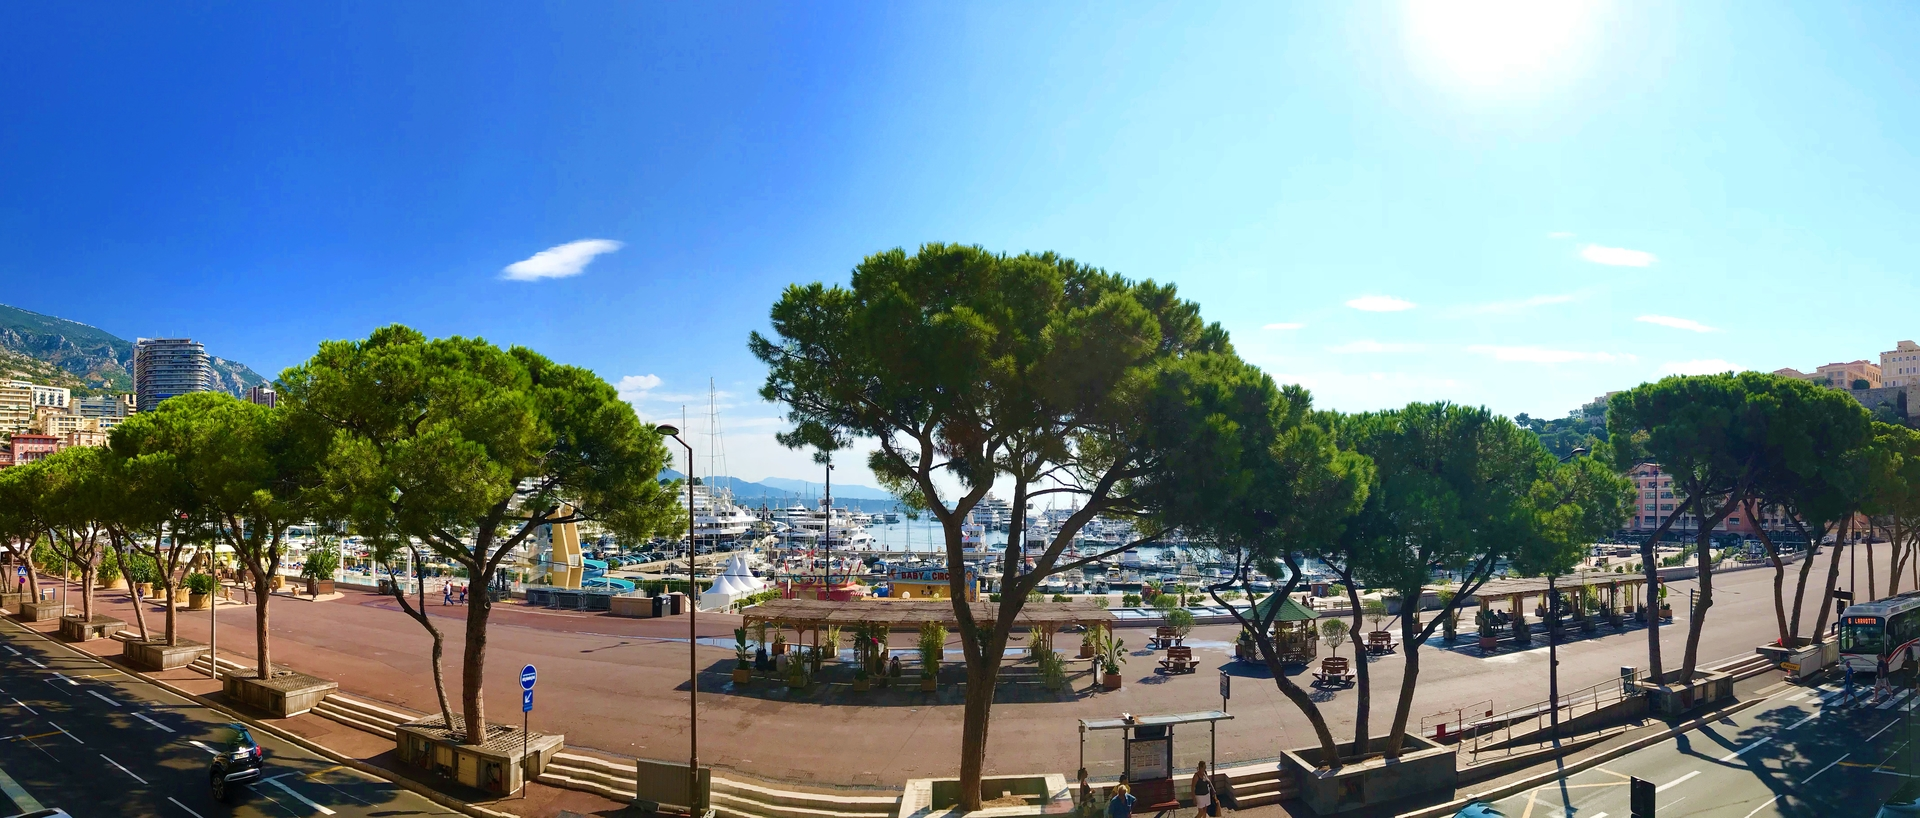 3 ROOMS MIXED USE CELLAR AND MAGNIFICENT VIEWS OF PORT HERCULE - Offices for sale in Monaco